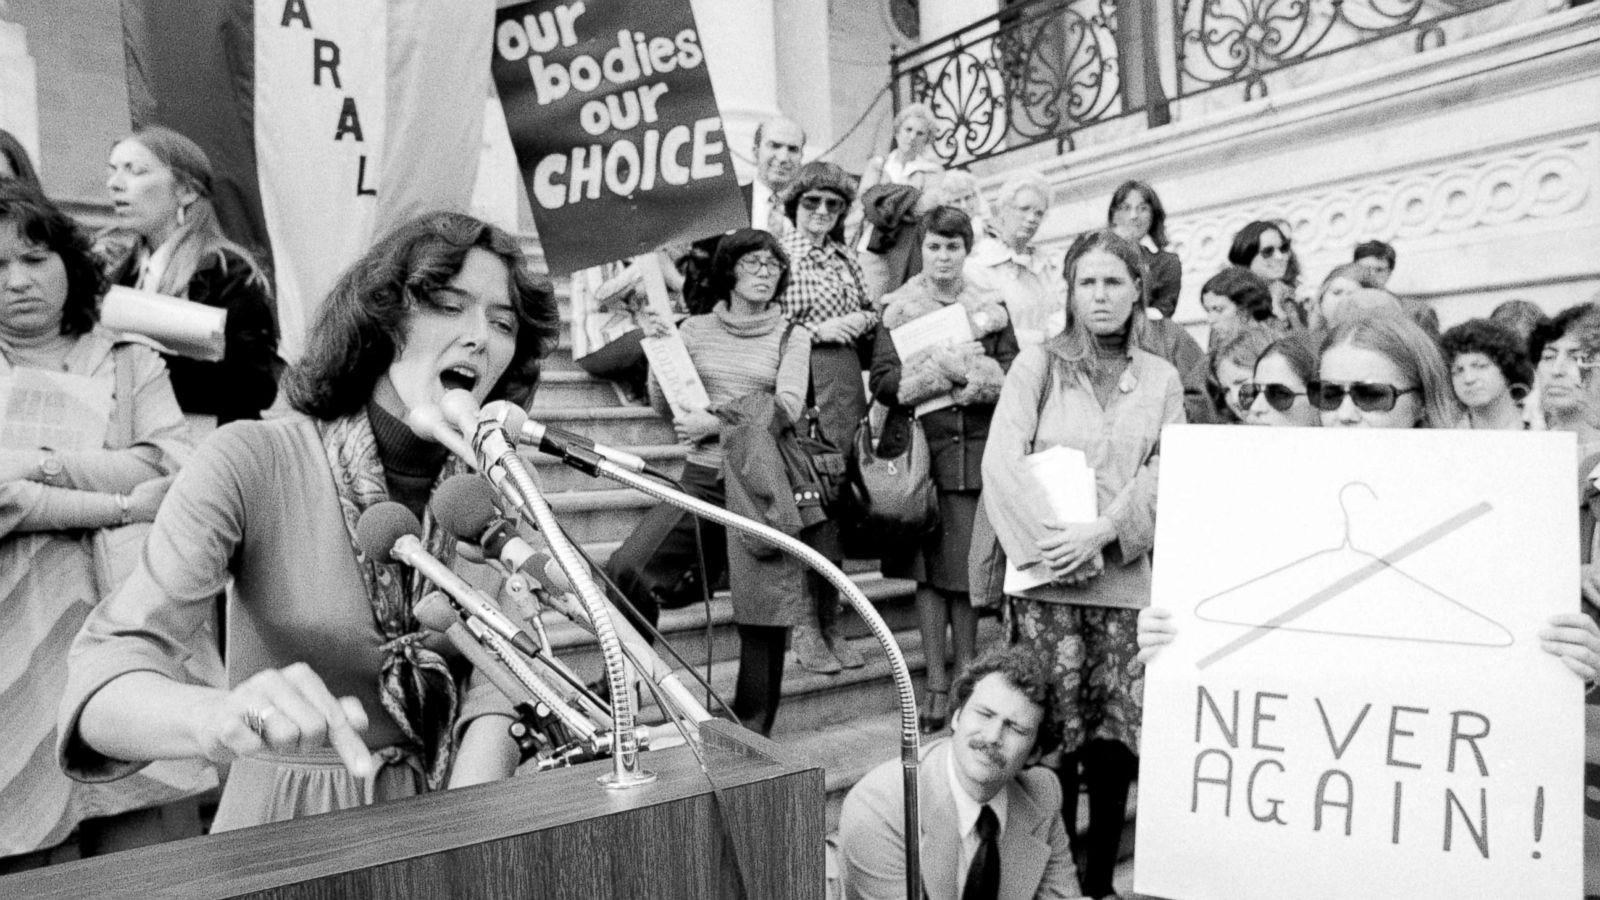 Women share what abortion was like before Roe v. Wade: 'I was one of the lucky ones, I survived' - ABC News